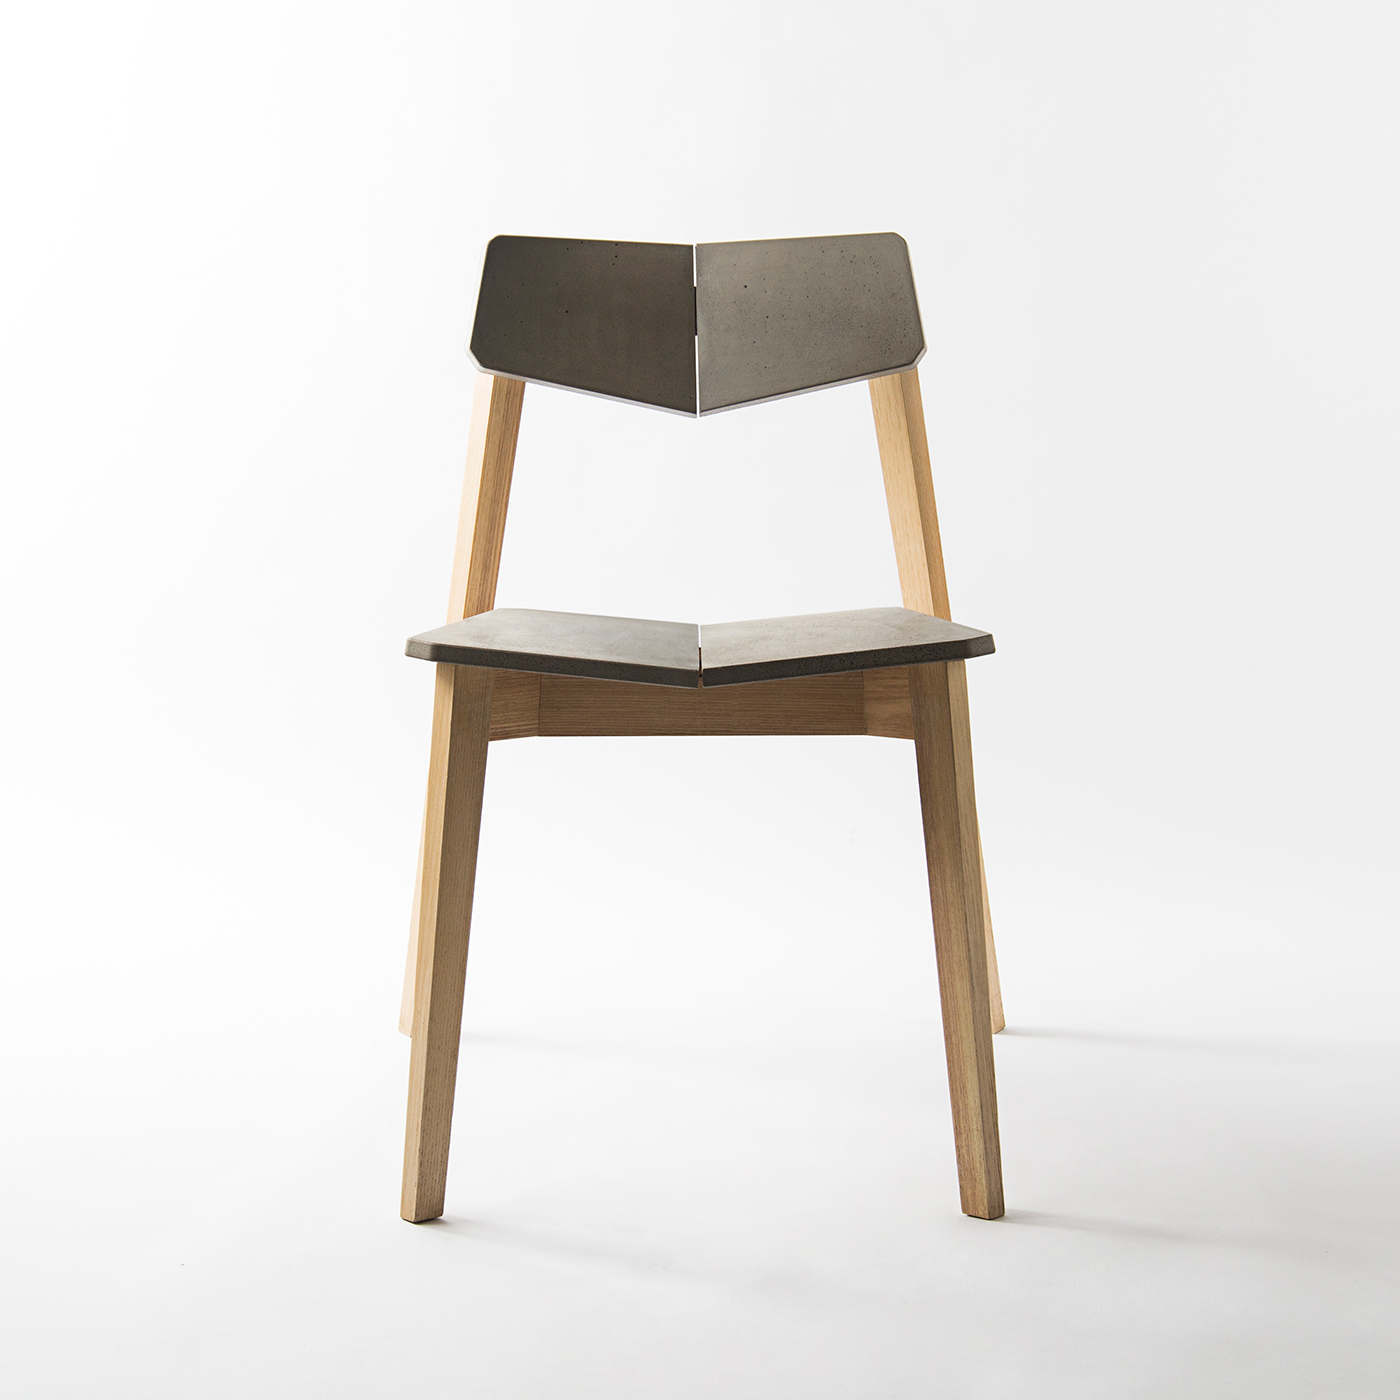 concrete and wood H chair by Bentu